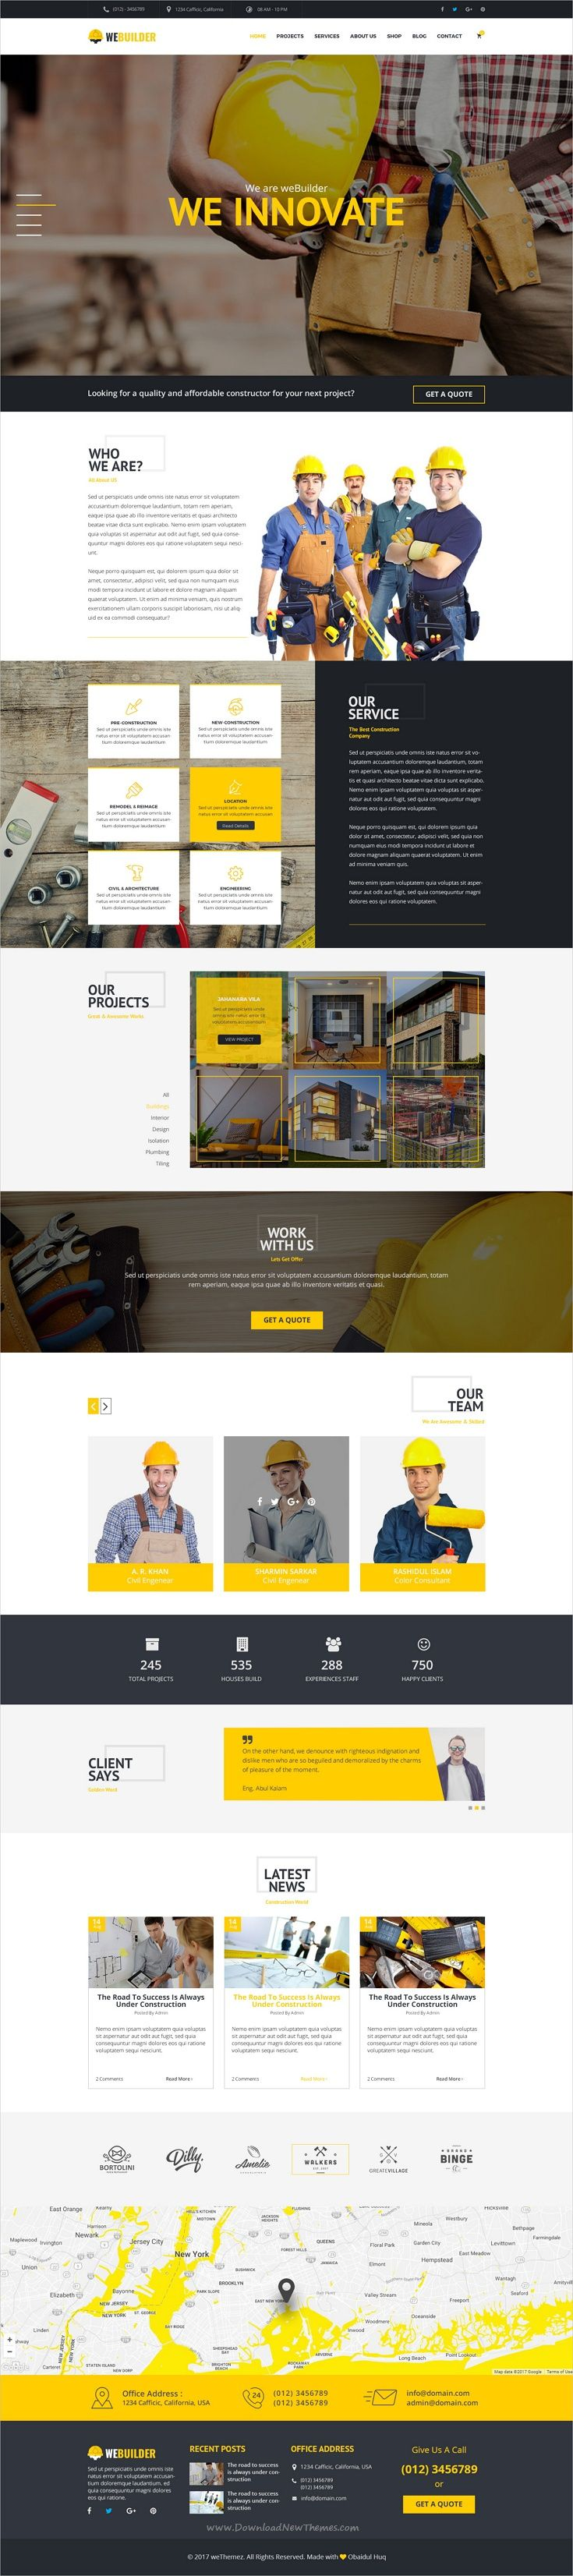 Webuilder is clean and modern design #PSD template for #construction and #building companies website with 9 layered PSD files download now➩ https://themeforest.net/item/webuilder-construction-building-psd-template/19620033?ref=Datasata